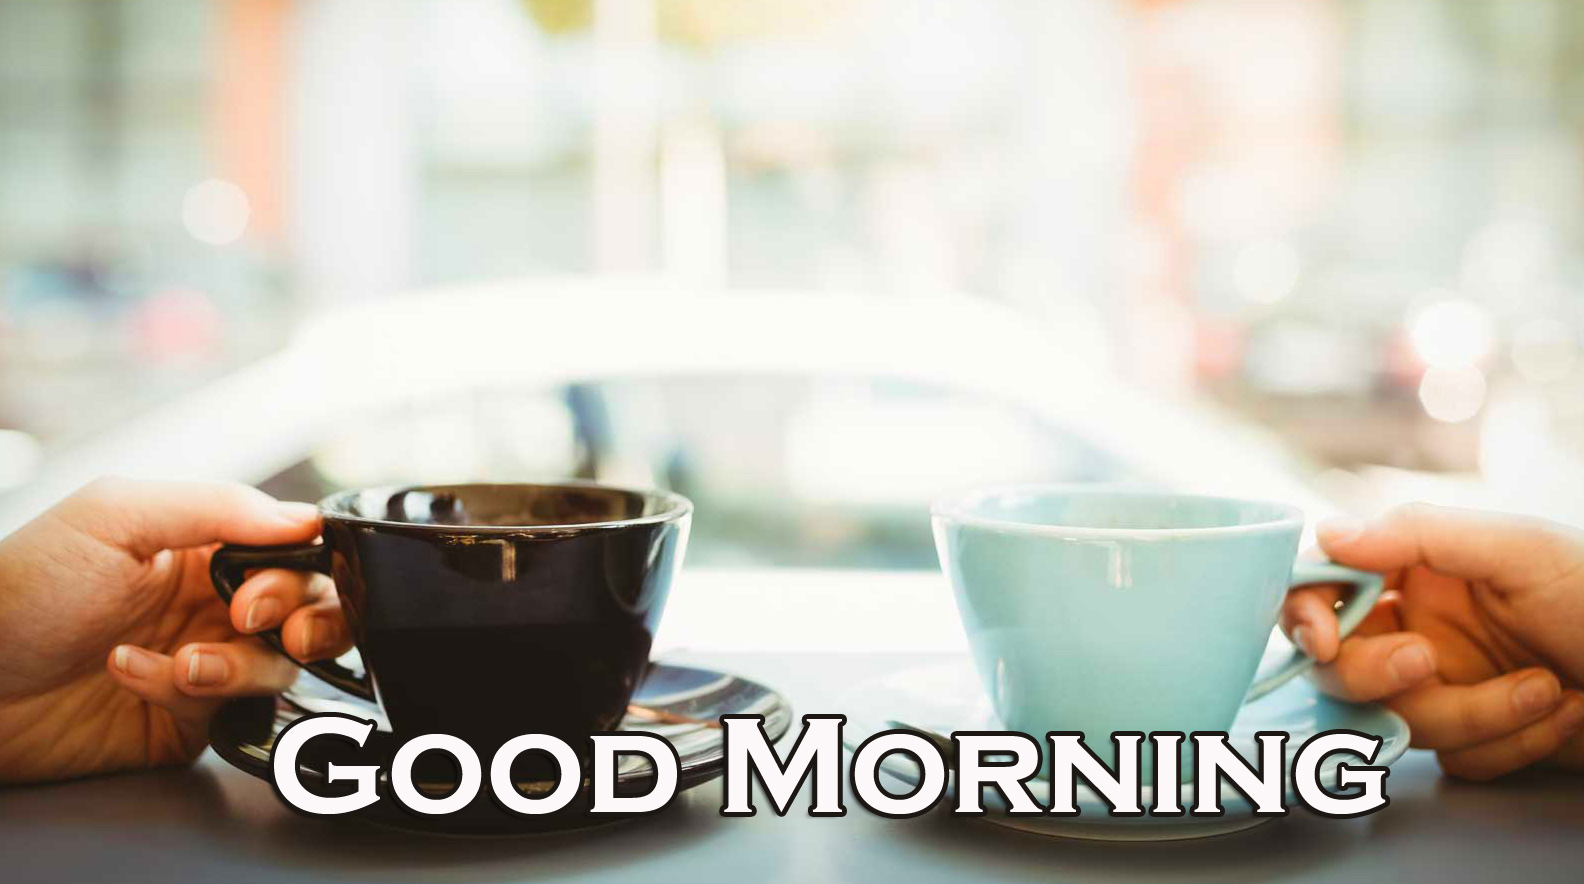 Good Morning Wallpaper Pics Download Free